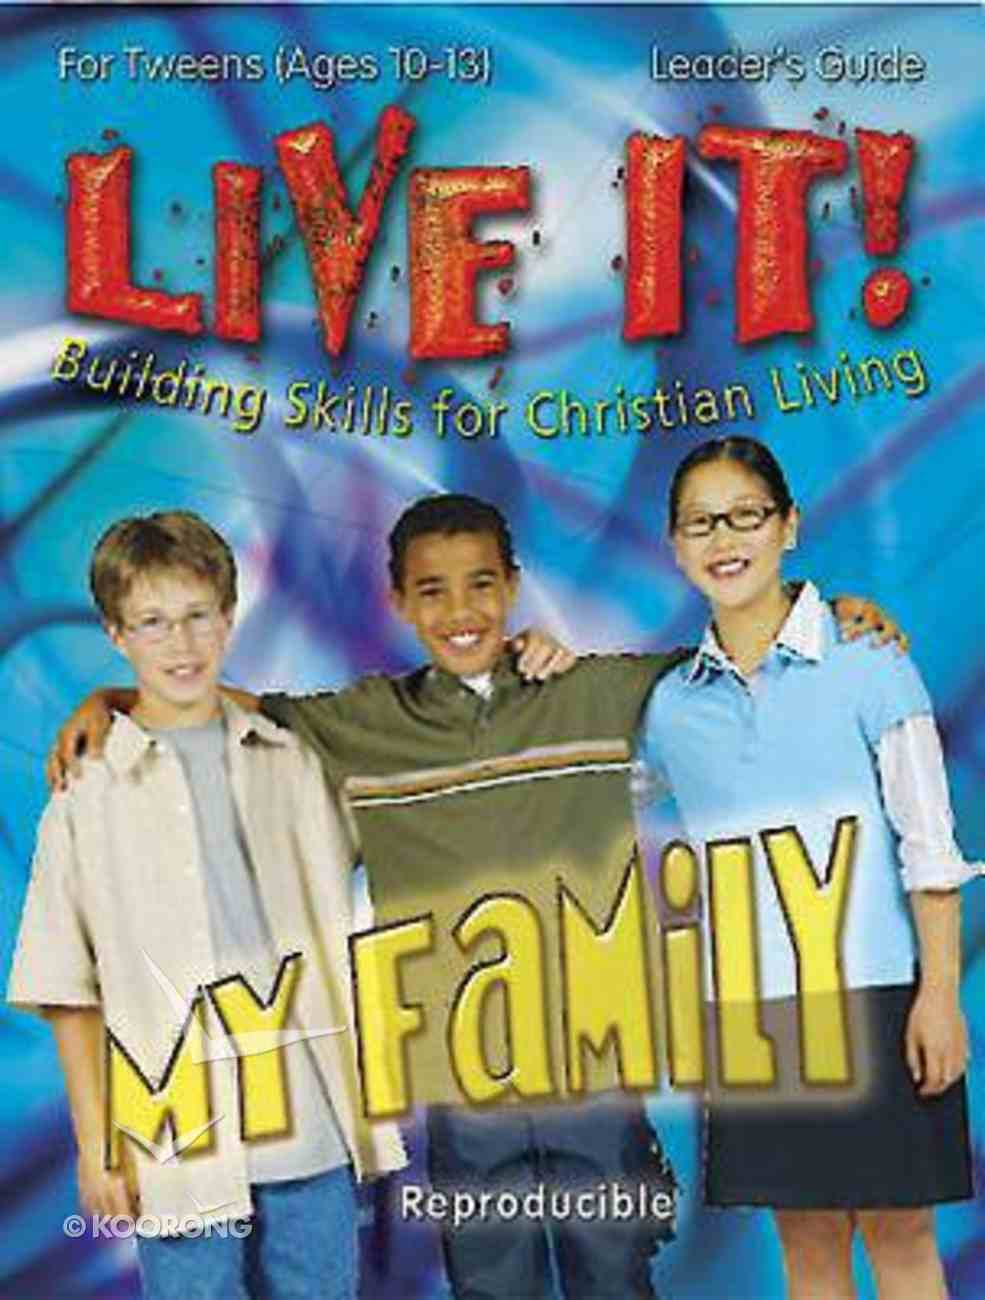 My Family Leader's Guide (Reproducible) (Live It! Series) Paperback